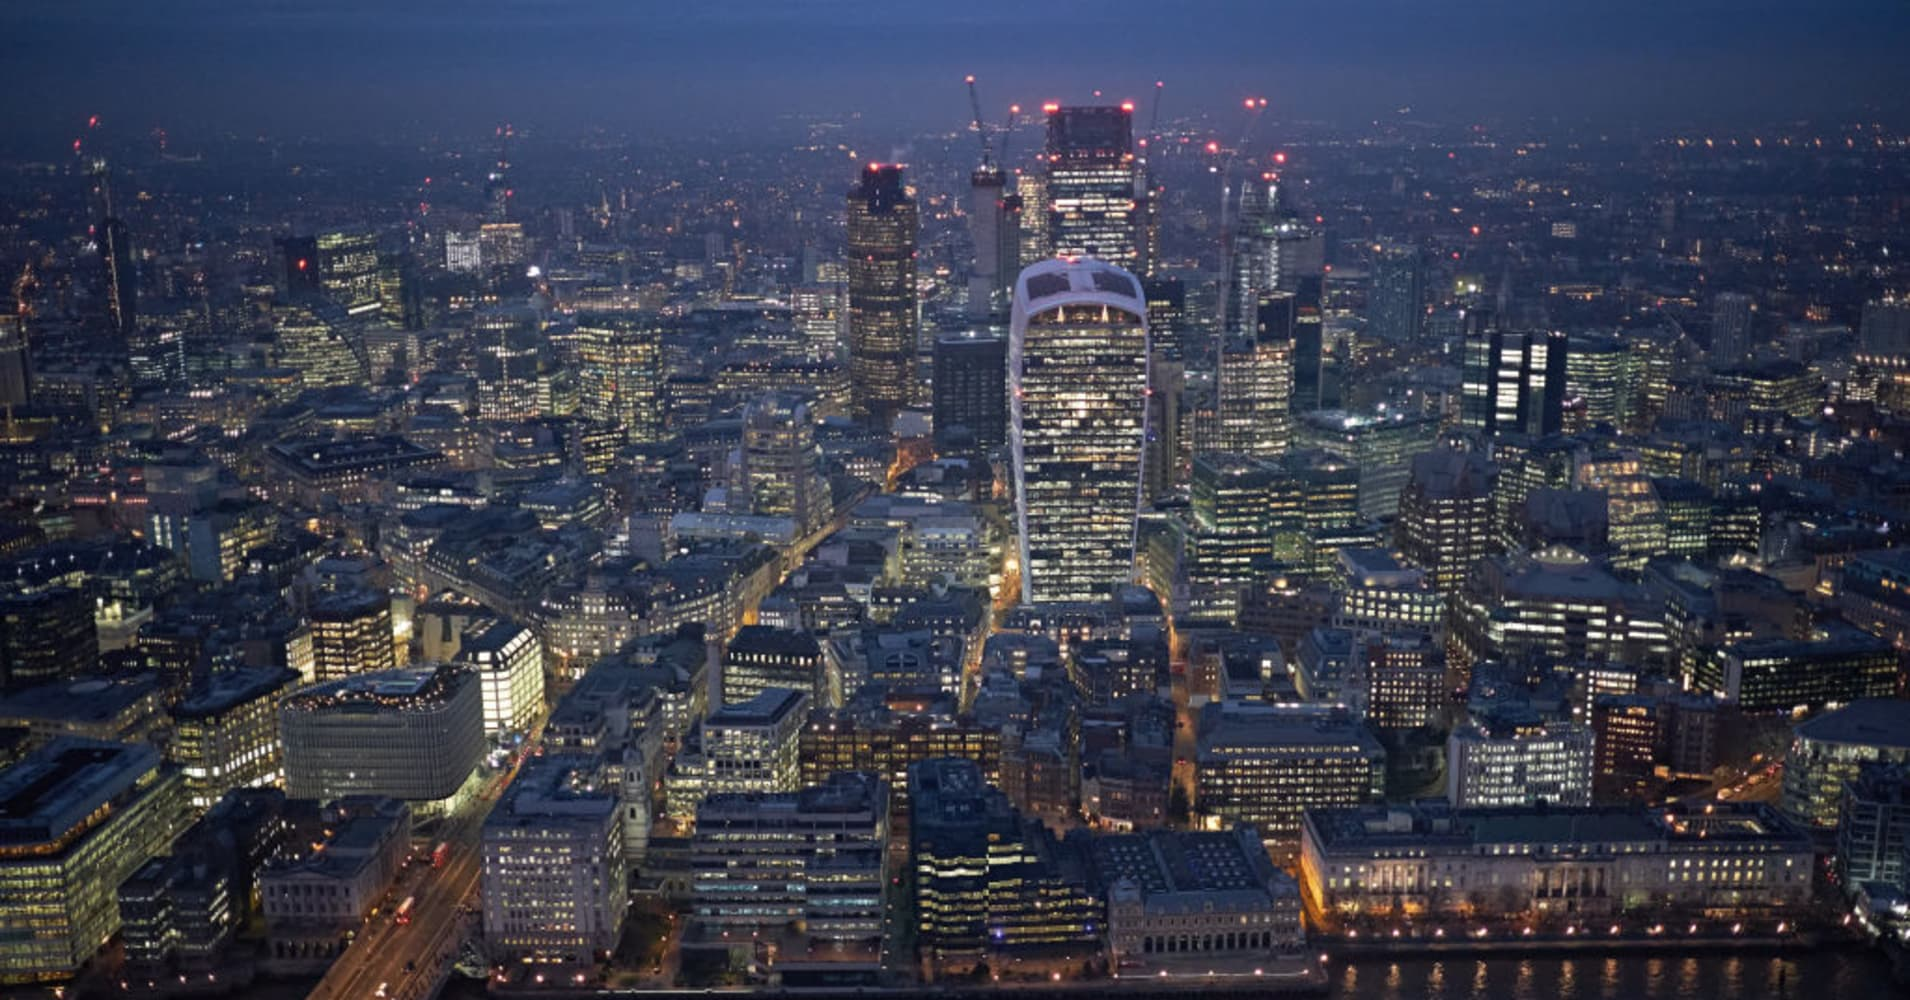 View of the City of London at dusk